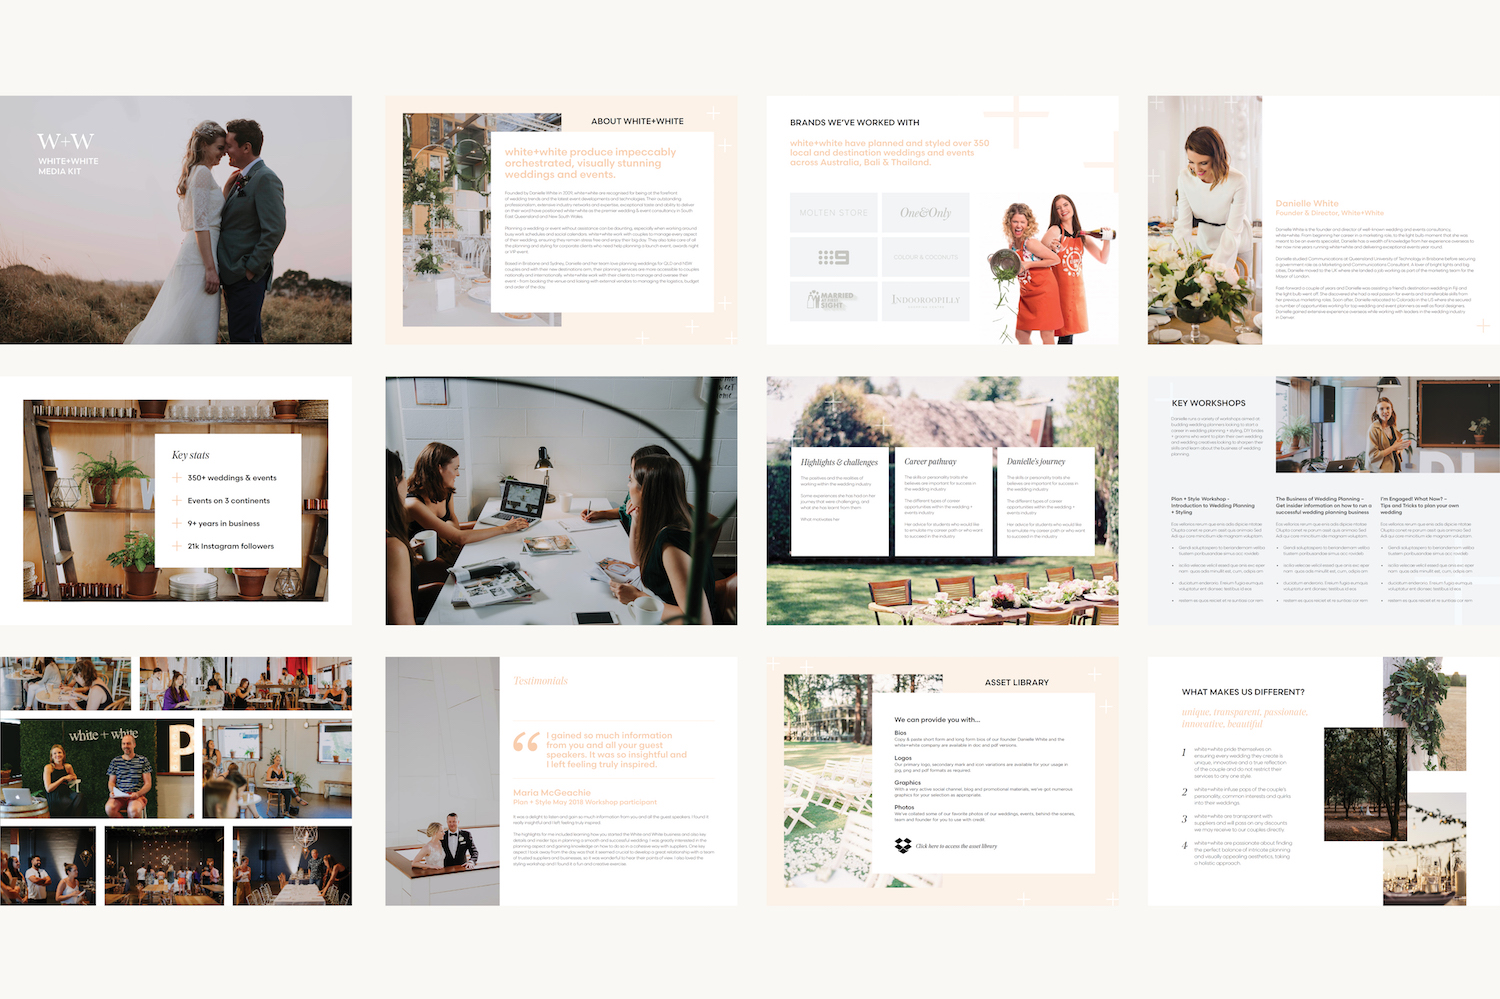 White + White Weddings & Events Identity Division Document Design PDF Products Media Kits Resources